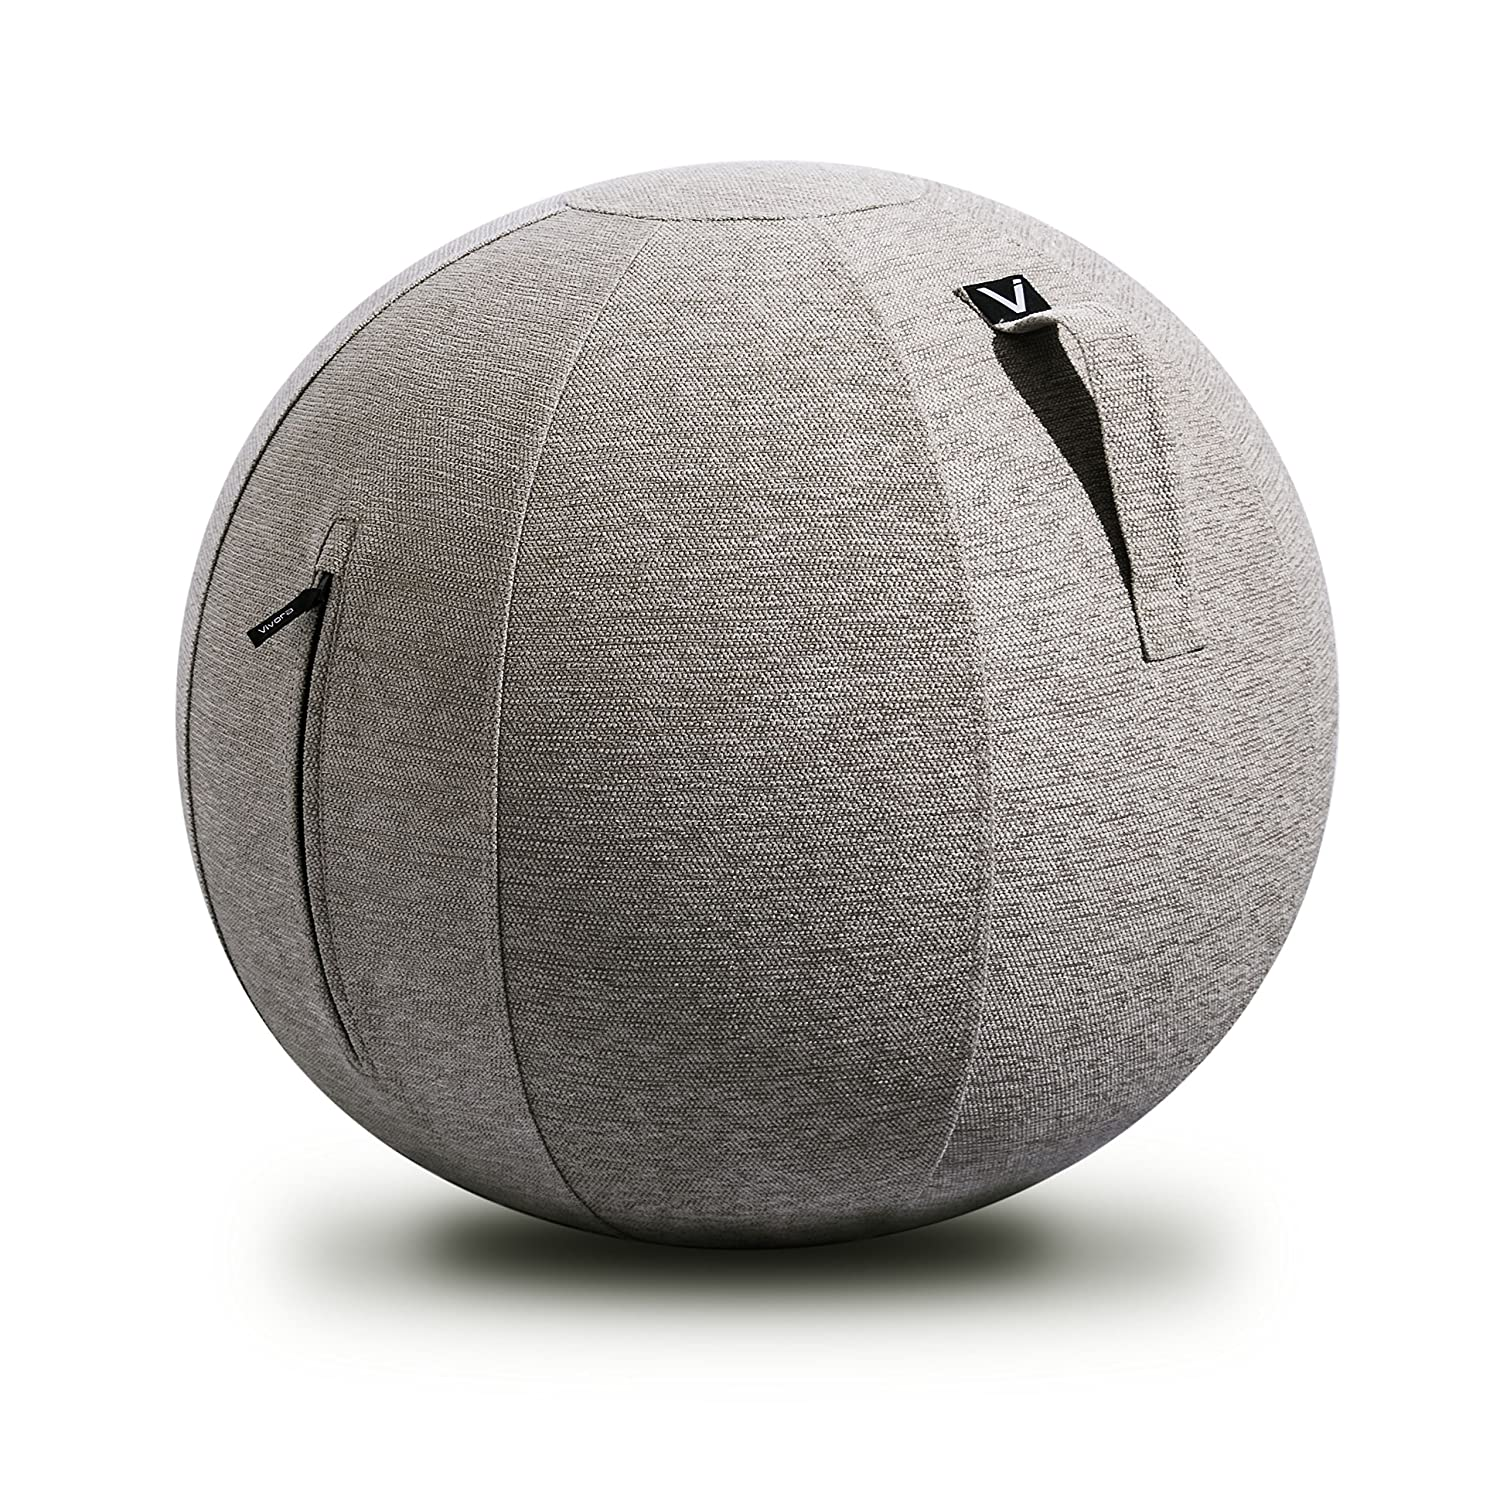 Vivora Luno - Self-Standing Sitting Ball Chair for Home, Office, Yoga,